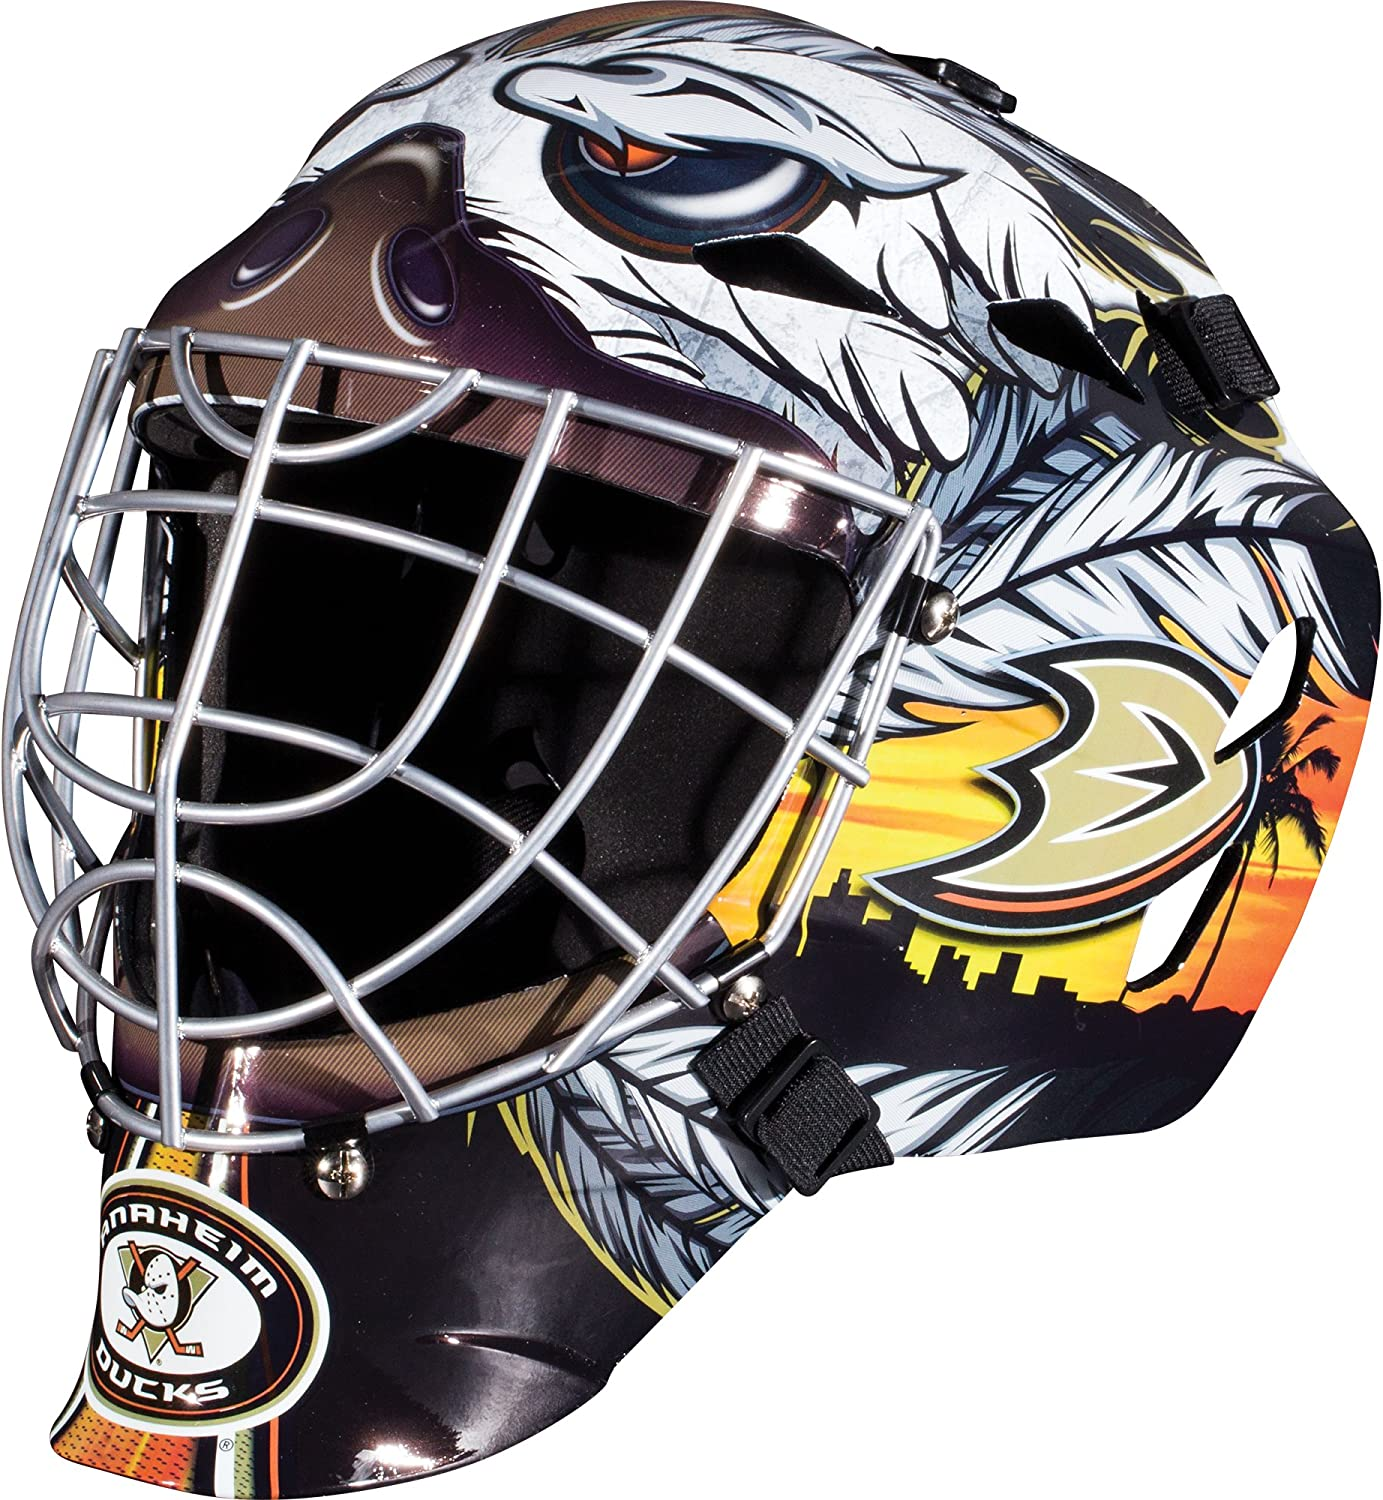 Youth Jersey /& Goalie Mask Halloween Fan Outfit Franklin Sports Edmonton Oilers Kids Hockey Costume Set NHL Official Licensed Product